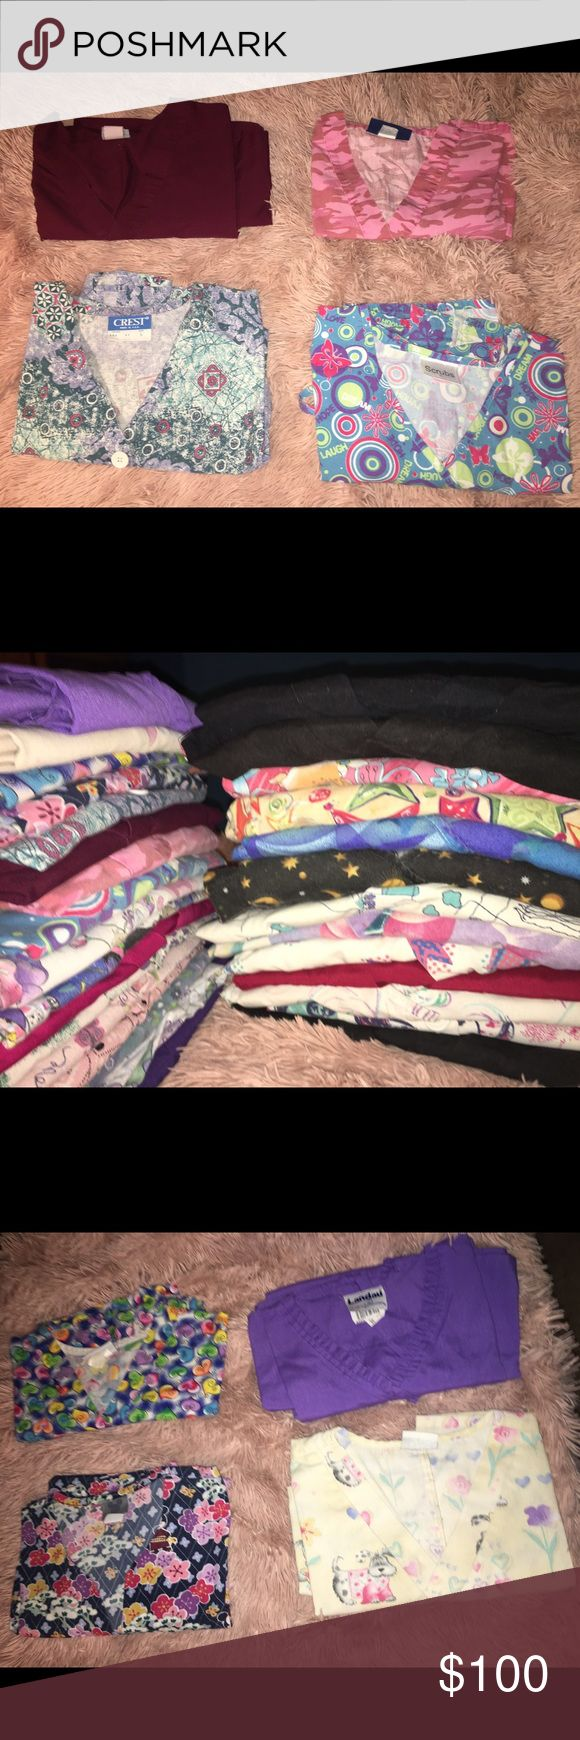 Scrubs for sale! Selling used scrubs that are in good condition. The sizes vary from M, L, and a couple XL! There is a variety of colors and patterns. Not everything is pictured due to limited picture space. The total amount of clothing is 40 tops, 18 pants, and 15 jackets! There is 73 item total for a very good price!! Other